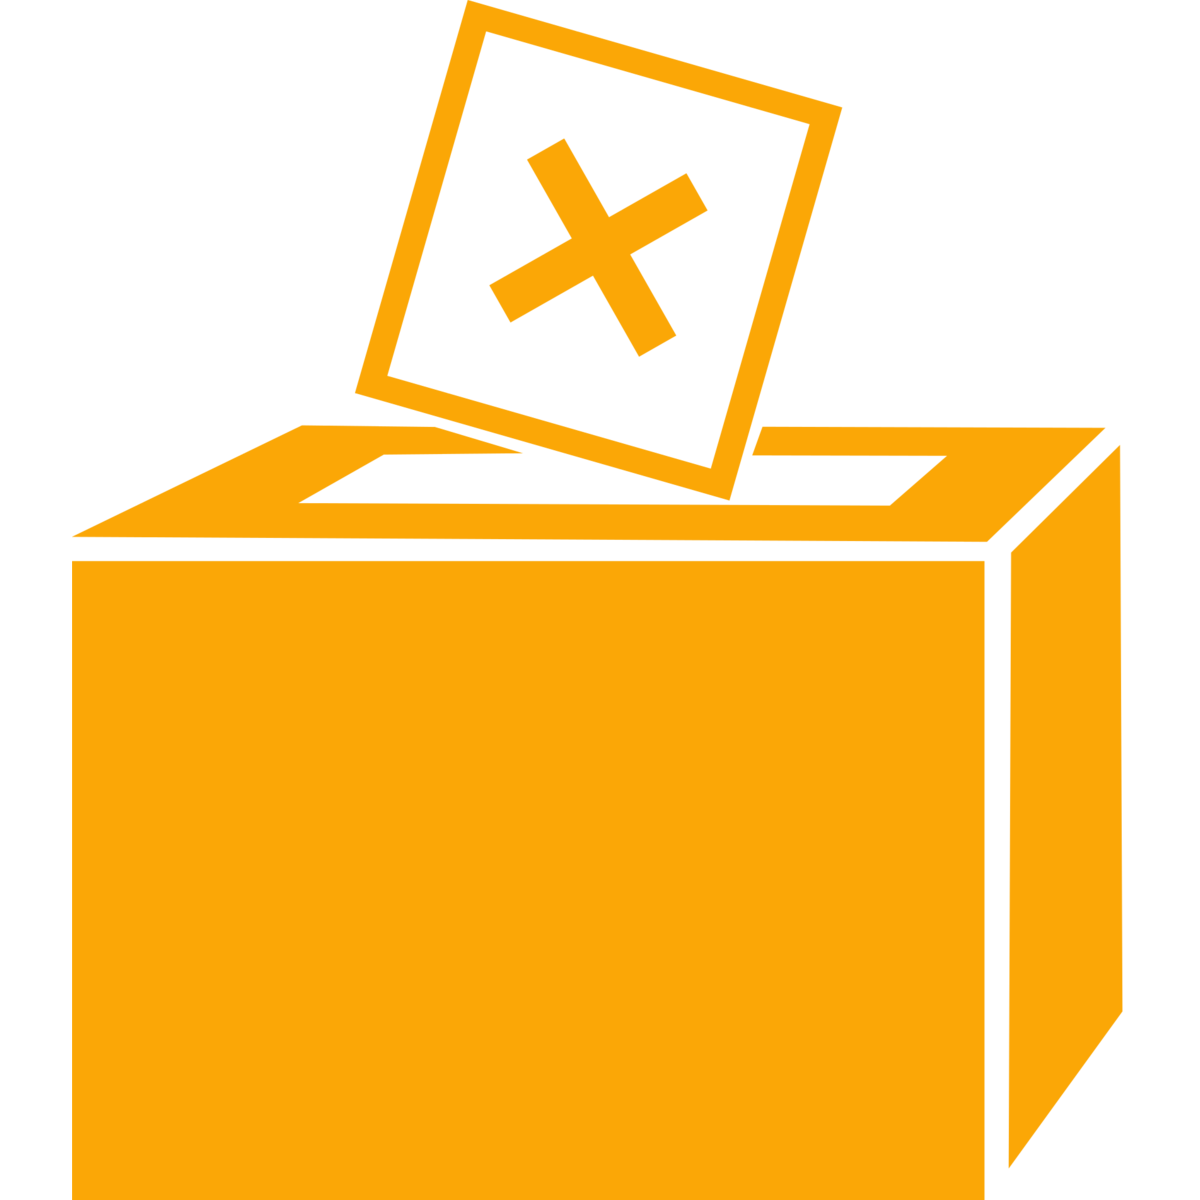 Election clipart voter registration. Absentee voting welcome to